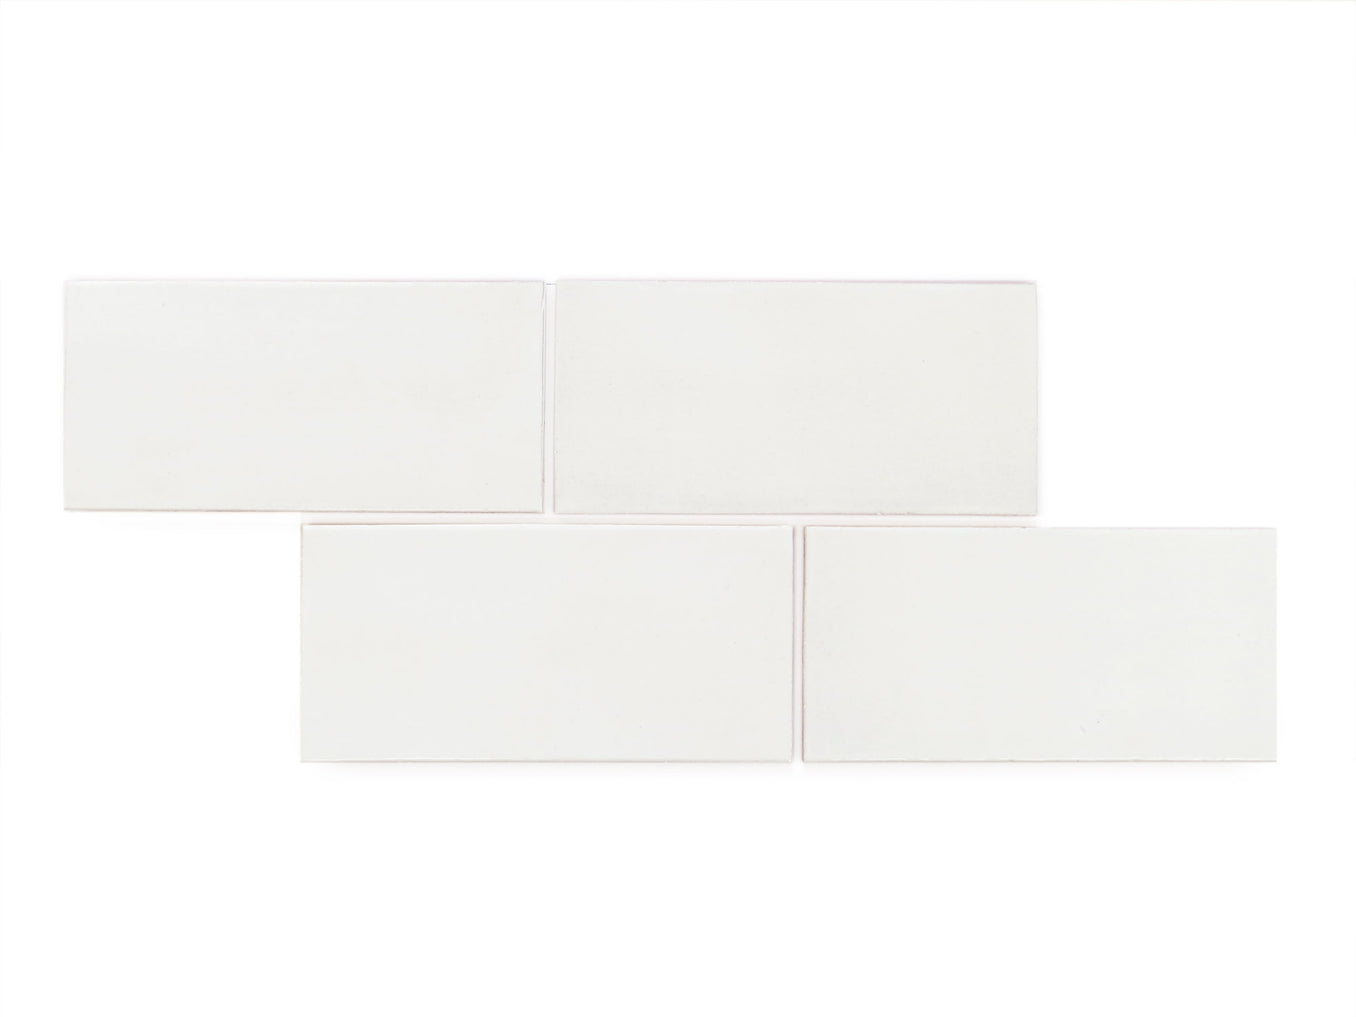 4x8 subway tile 130 white mercury mosaics 4x8 subway tile 130 white 4x8 subway tile white 4x8 subway tile white 4x8 subway tile white 4x8 subway tile white dailygadgetfo Gallery